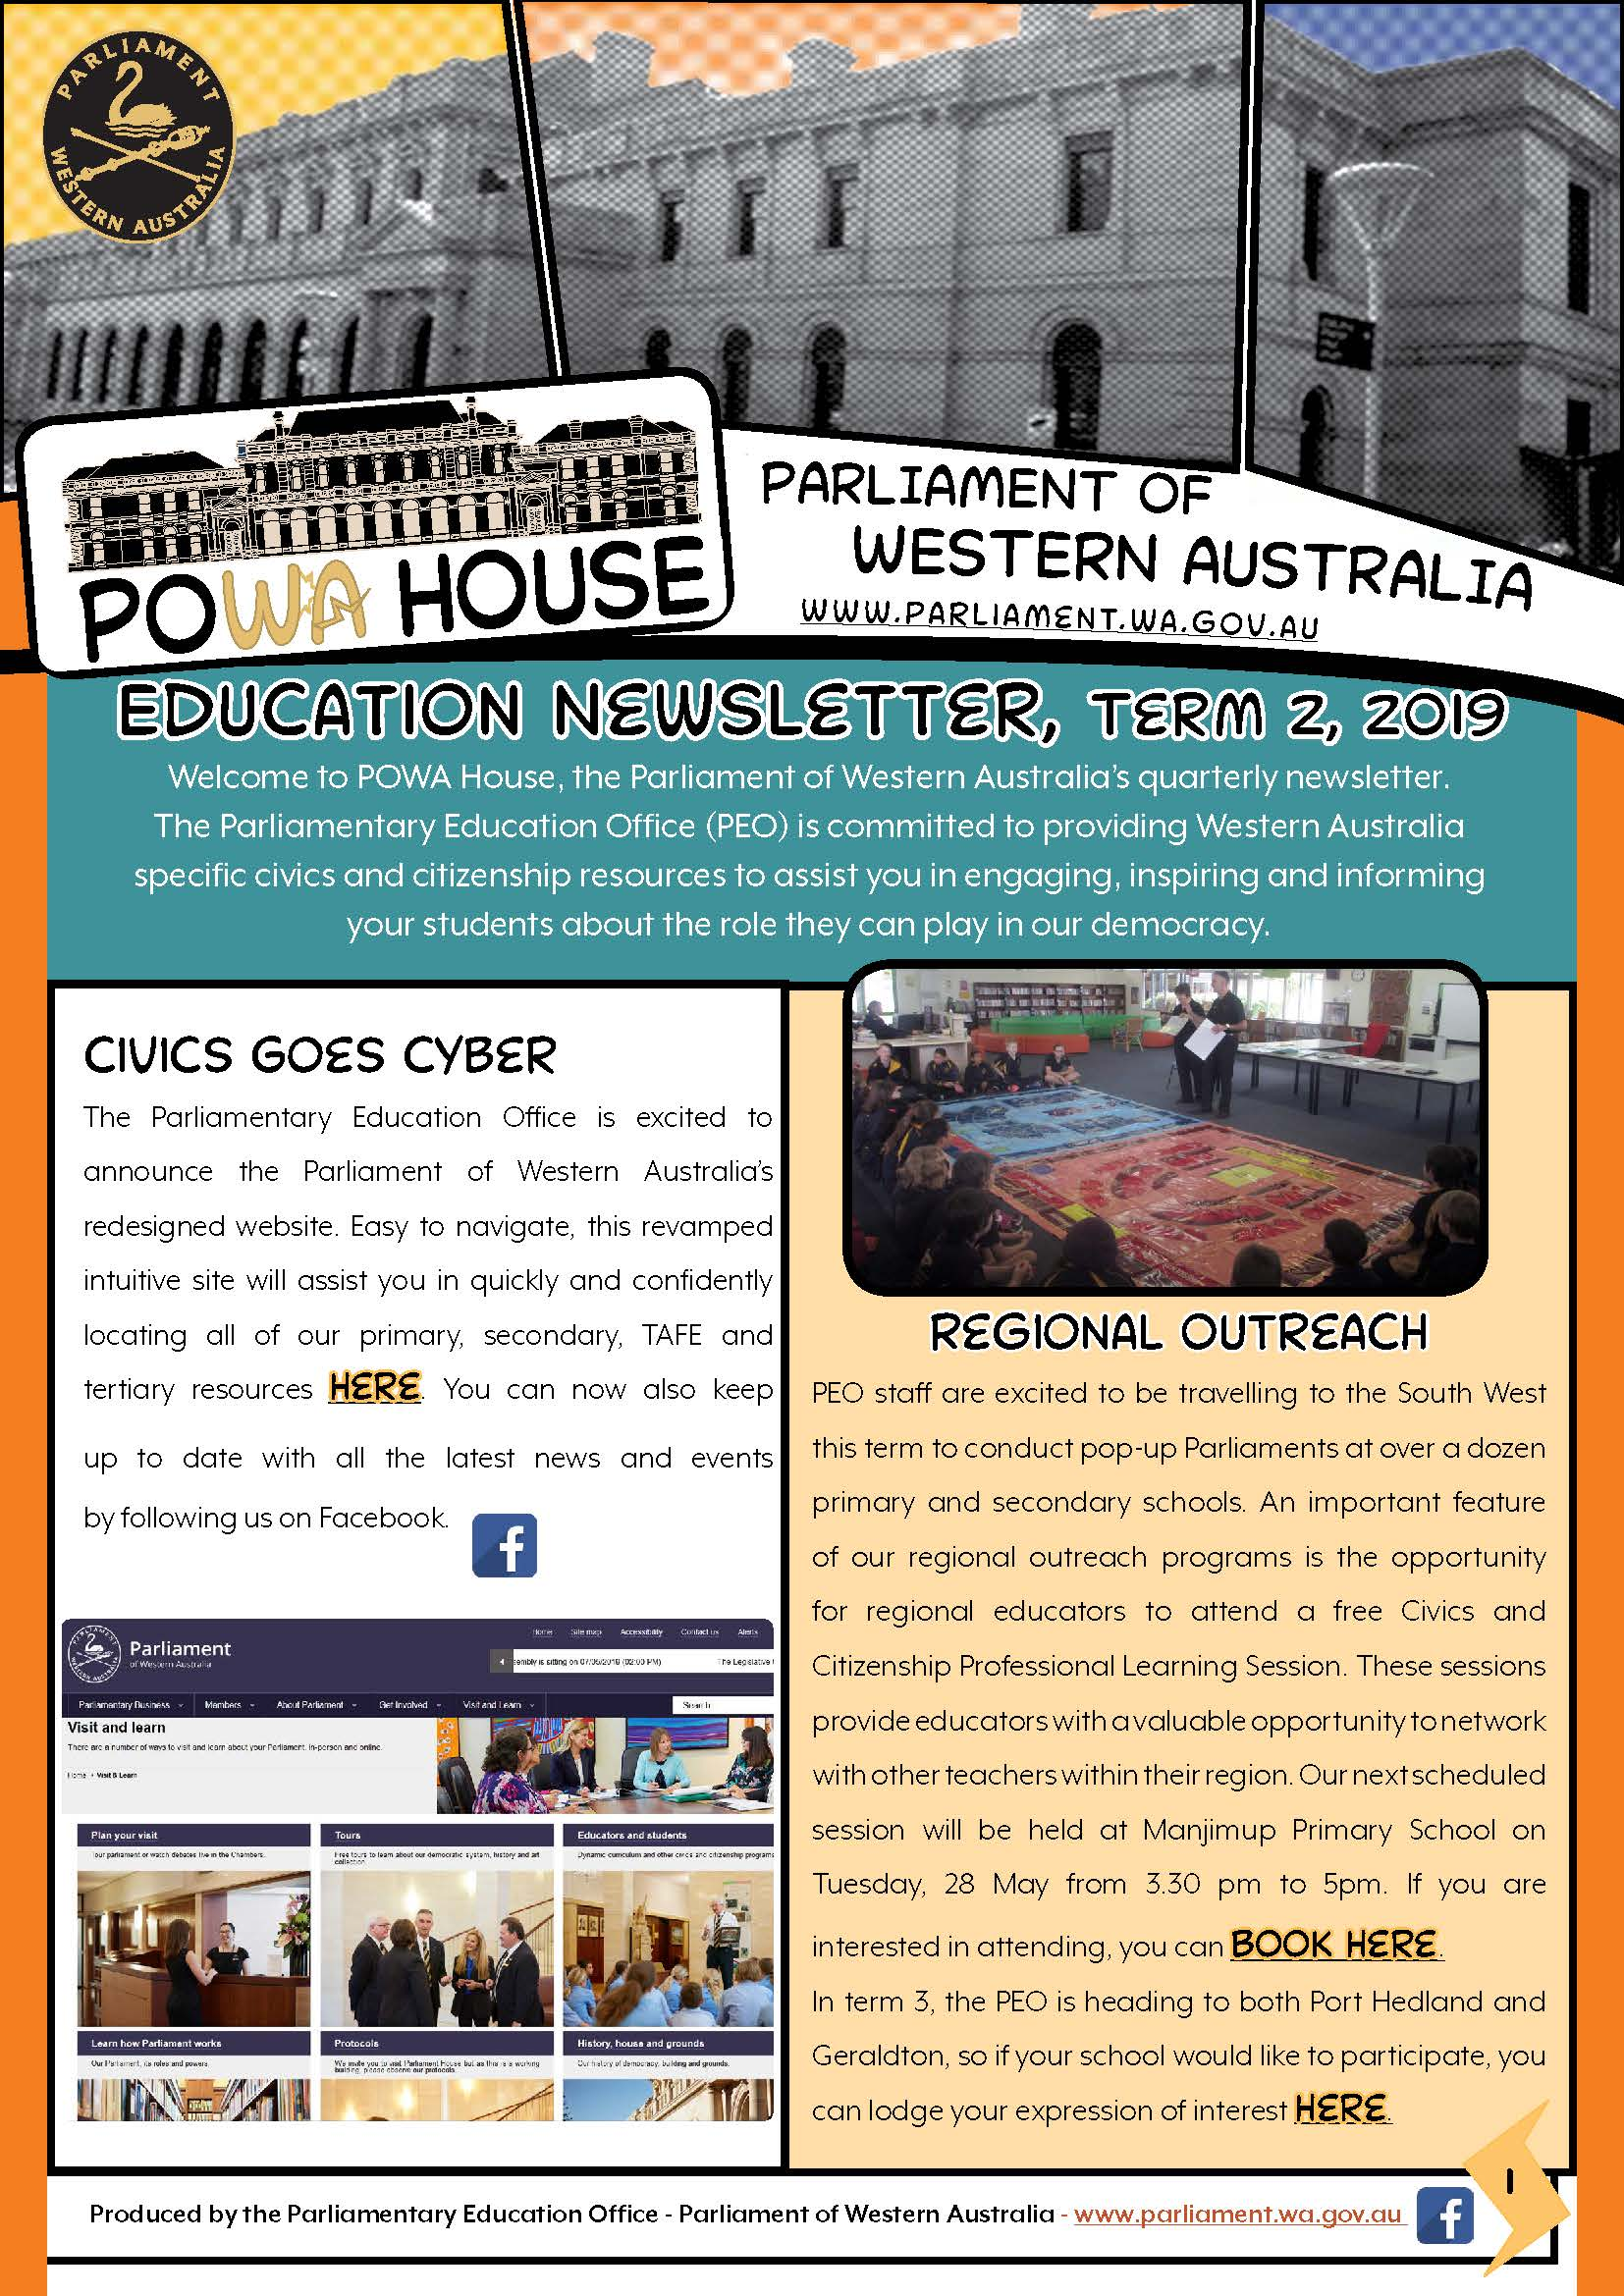 PowaT22019/Education Newsletter - Term 2 2019_Page_1.jpg